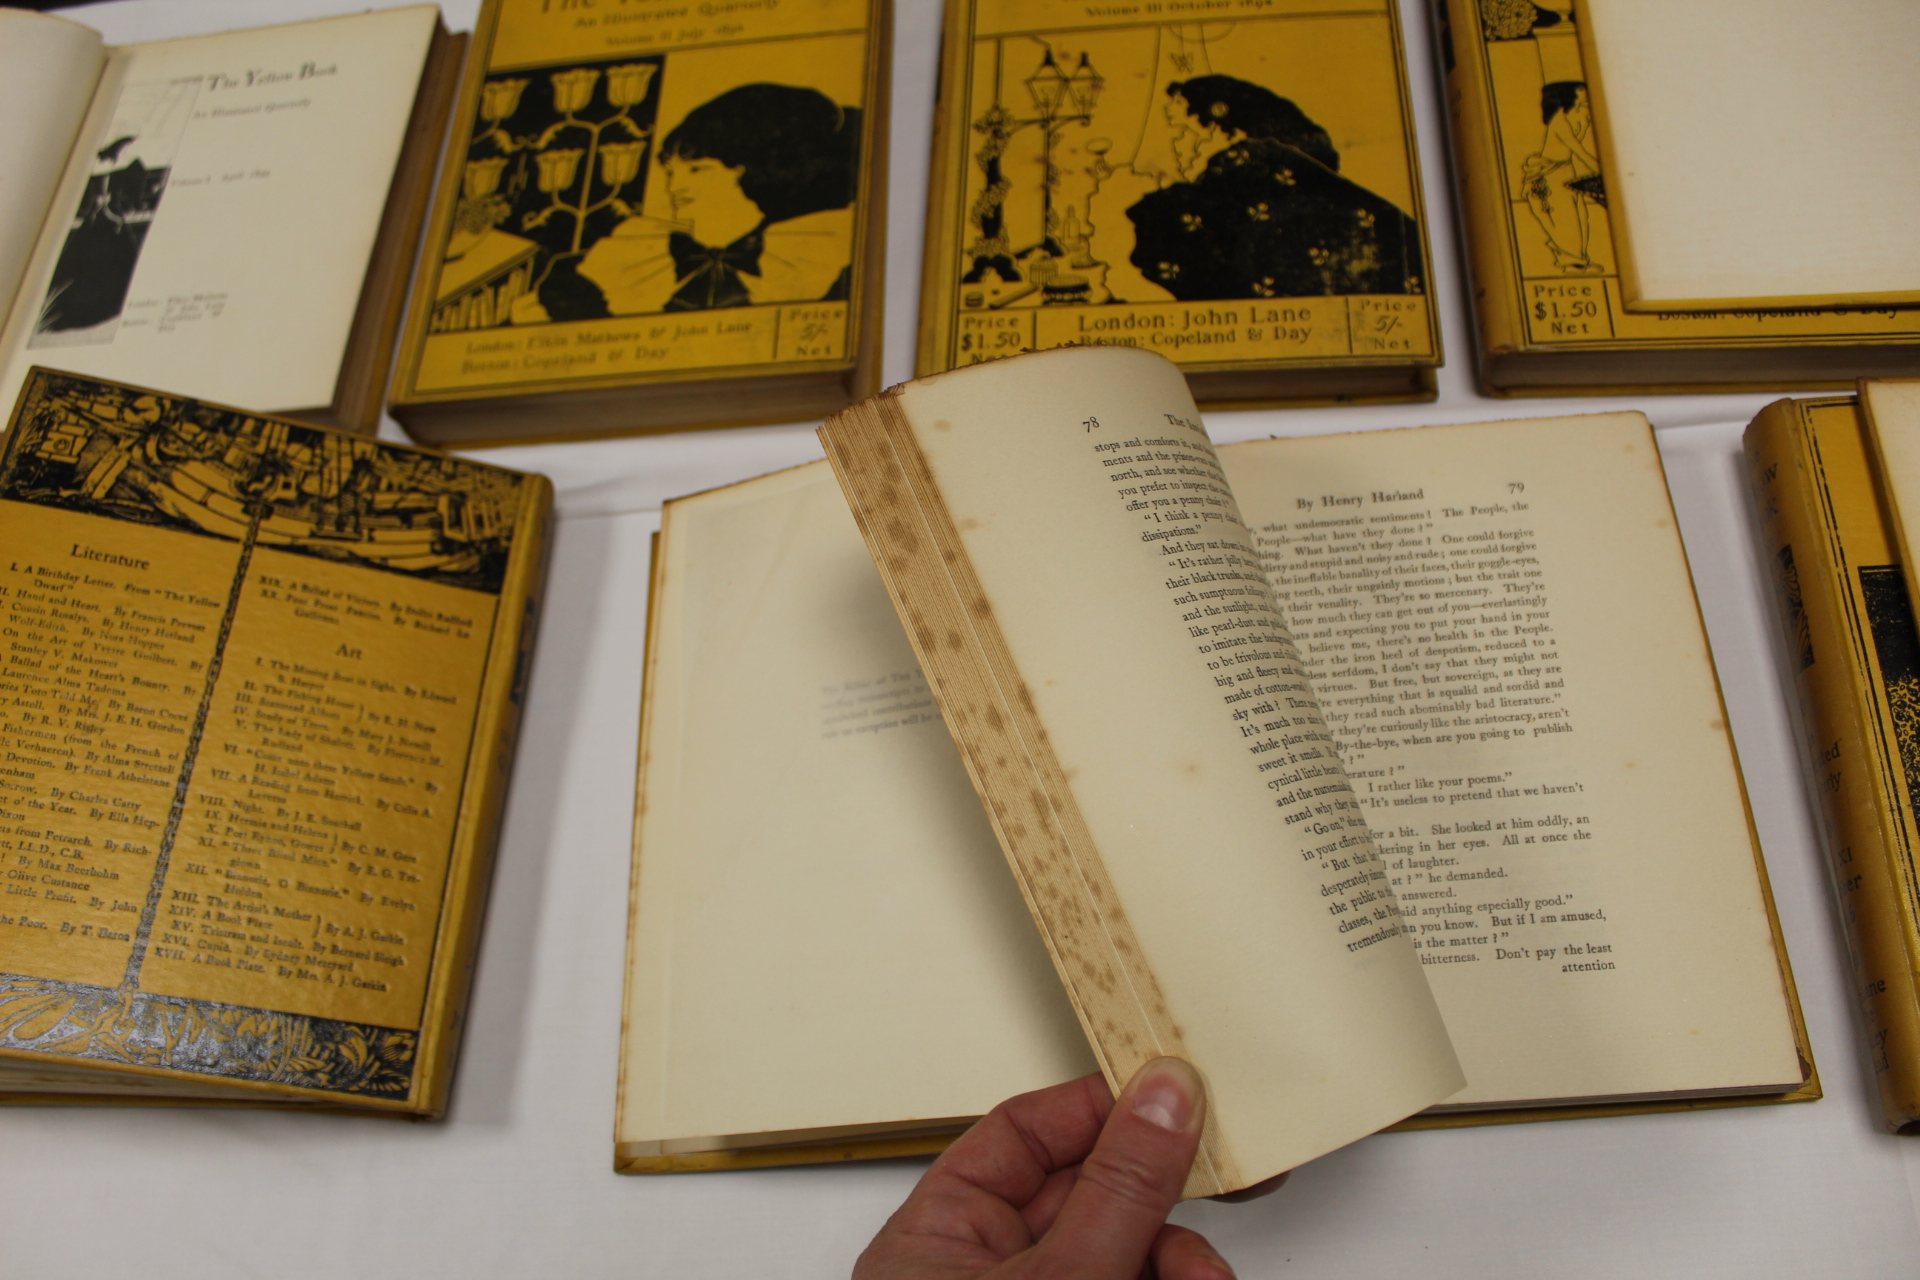 THE YELLOW BOOK.An Illustrated Quarterly. A set of 13 vols., many fine illus. Small quarto. - Image 13 of 45